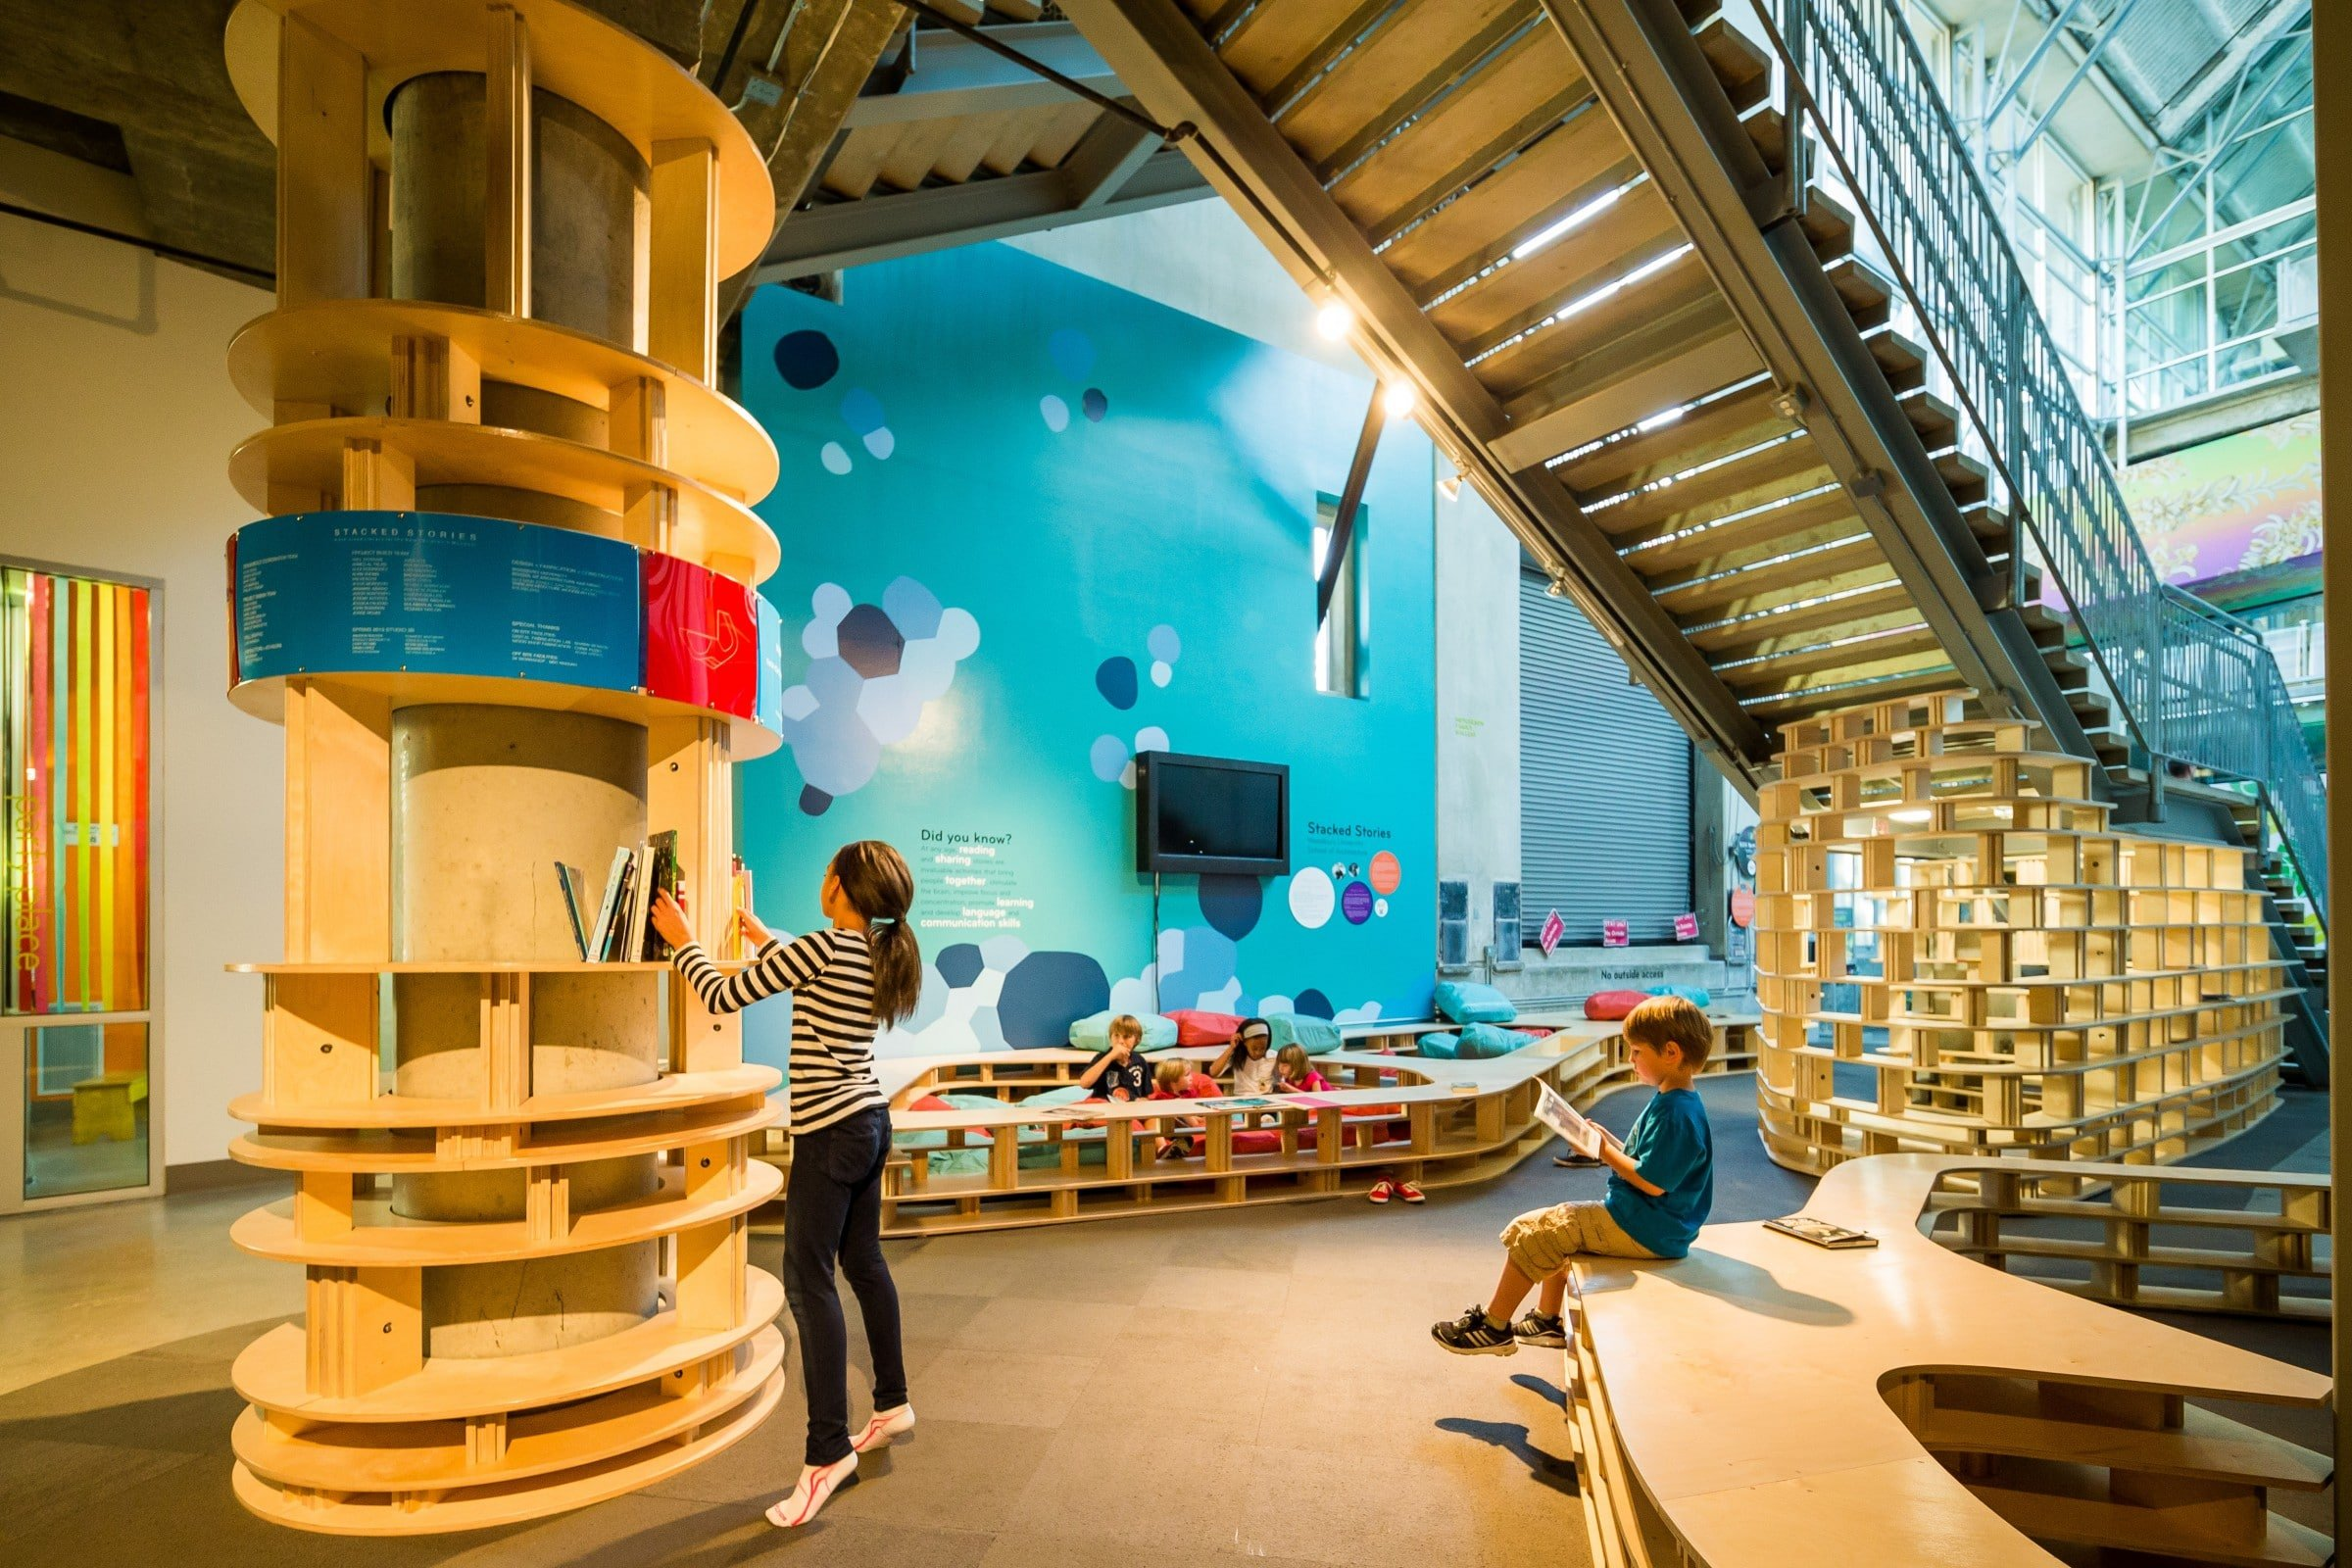 Best San Diego Museums: A girl plays in an exhibit at The New Children's Museum.